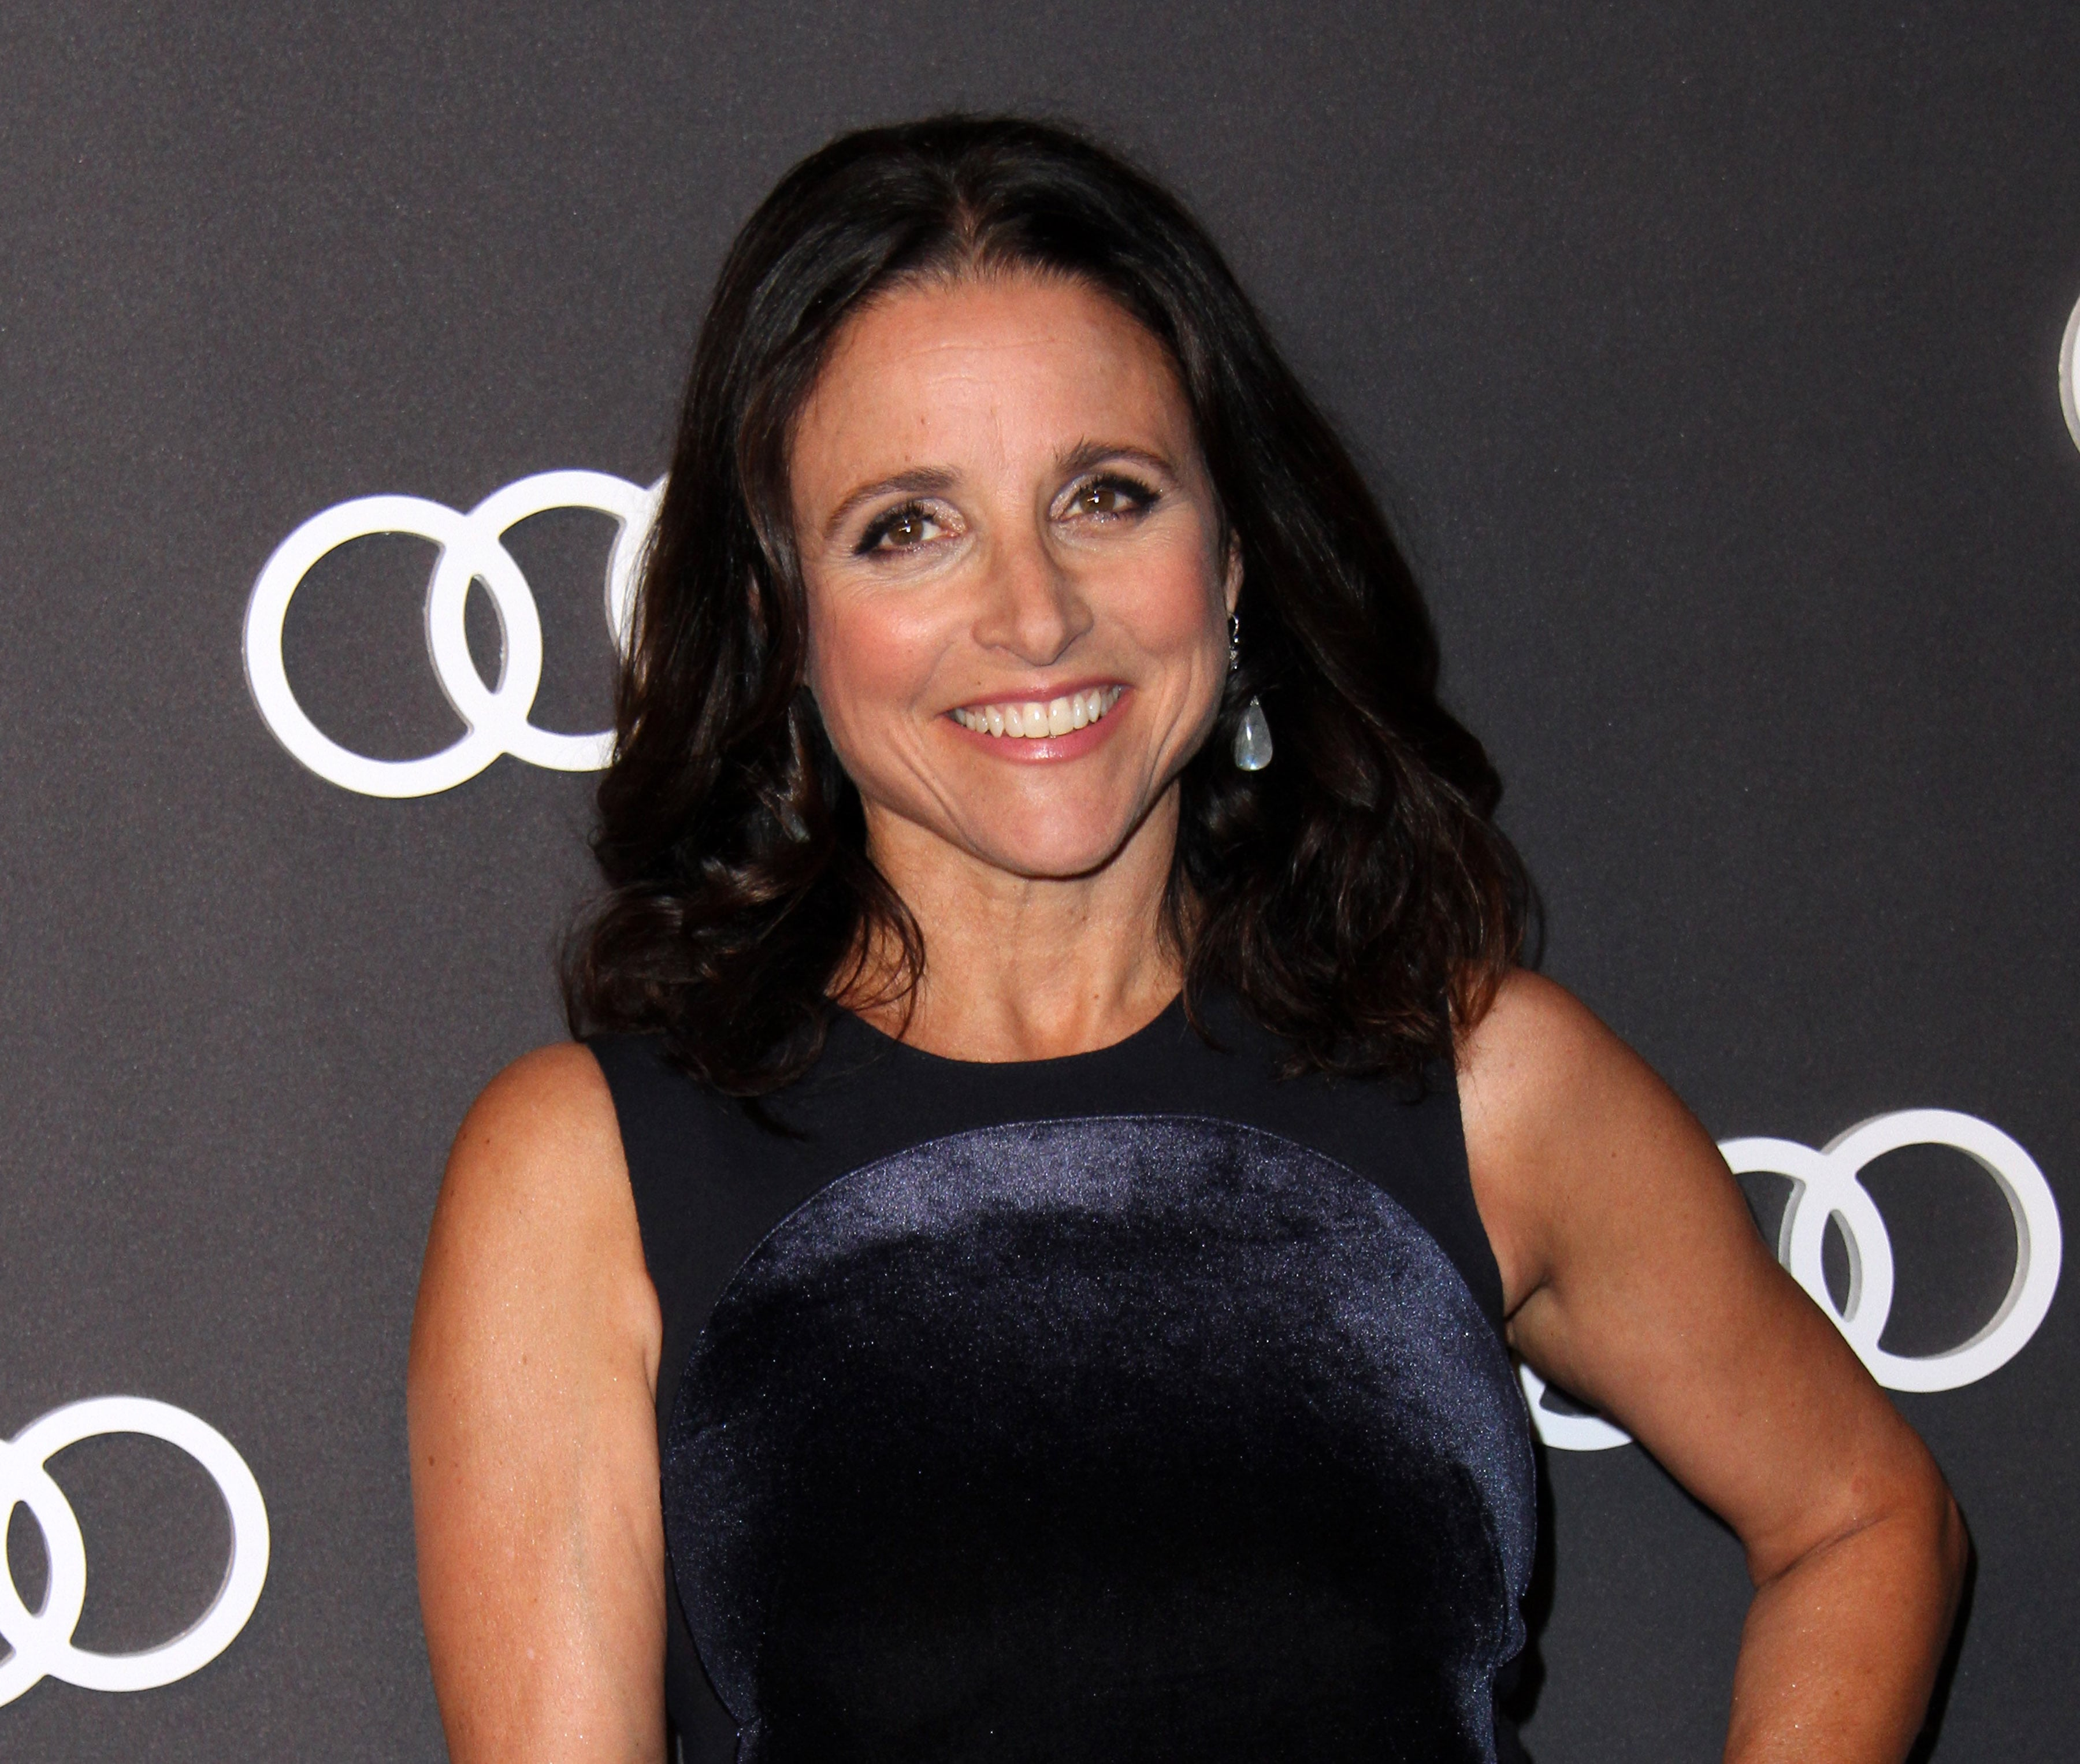 Actress Julia Louis-Dreyfus, 56, has breast cancer. (Photo: WENN)